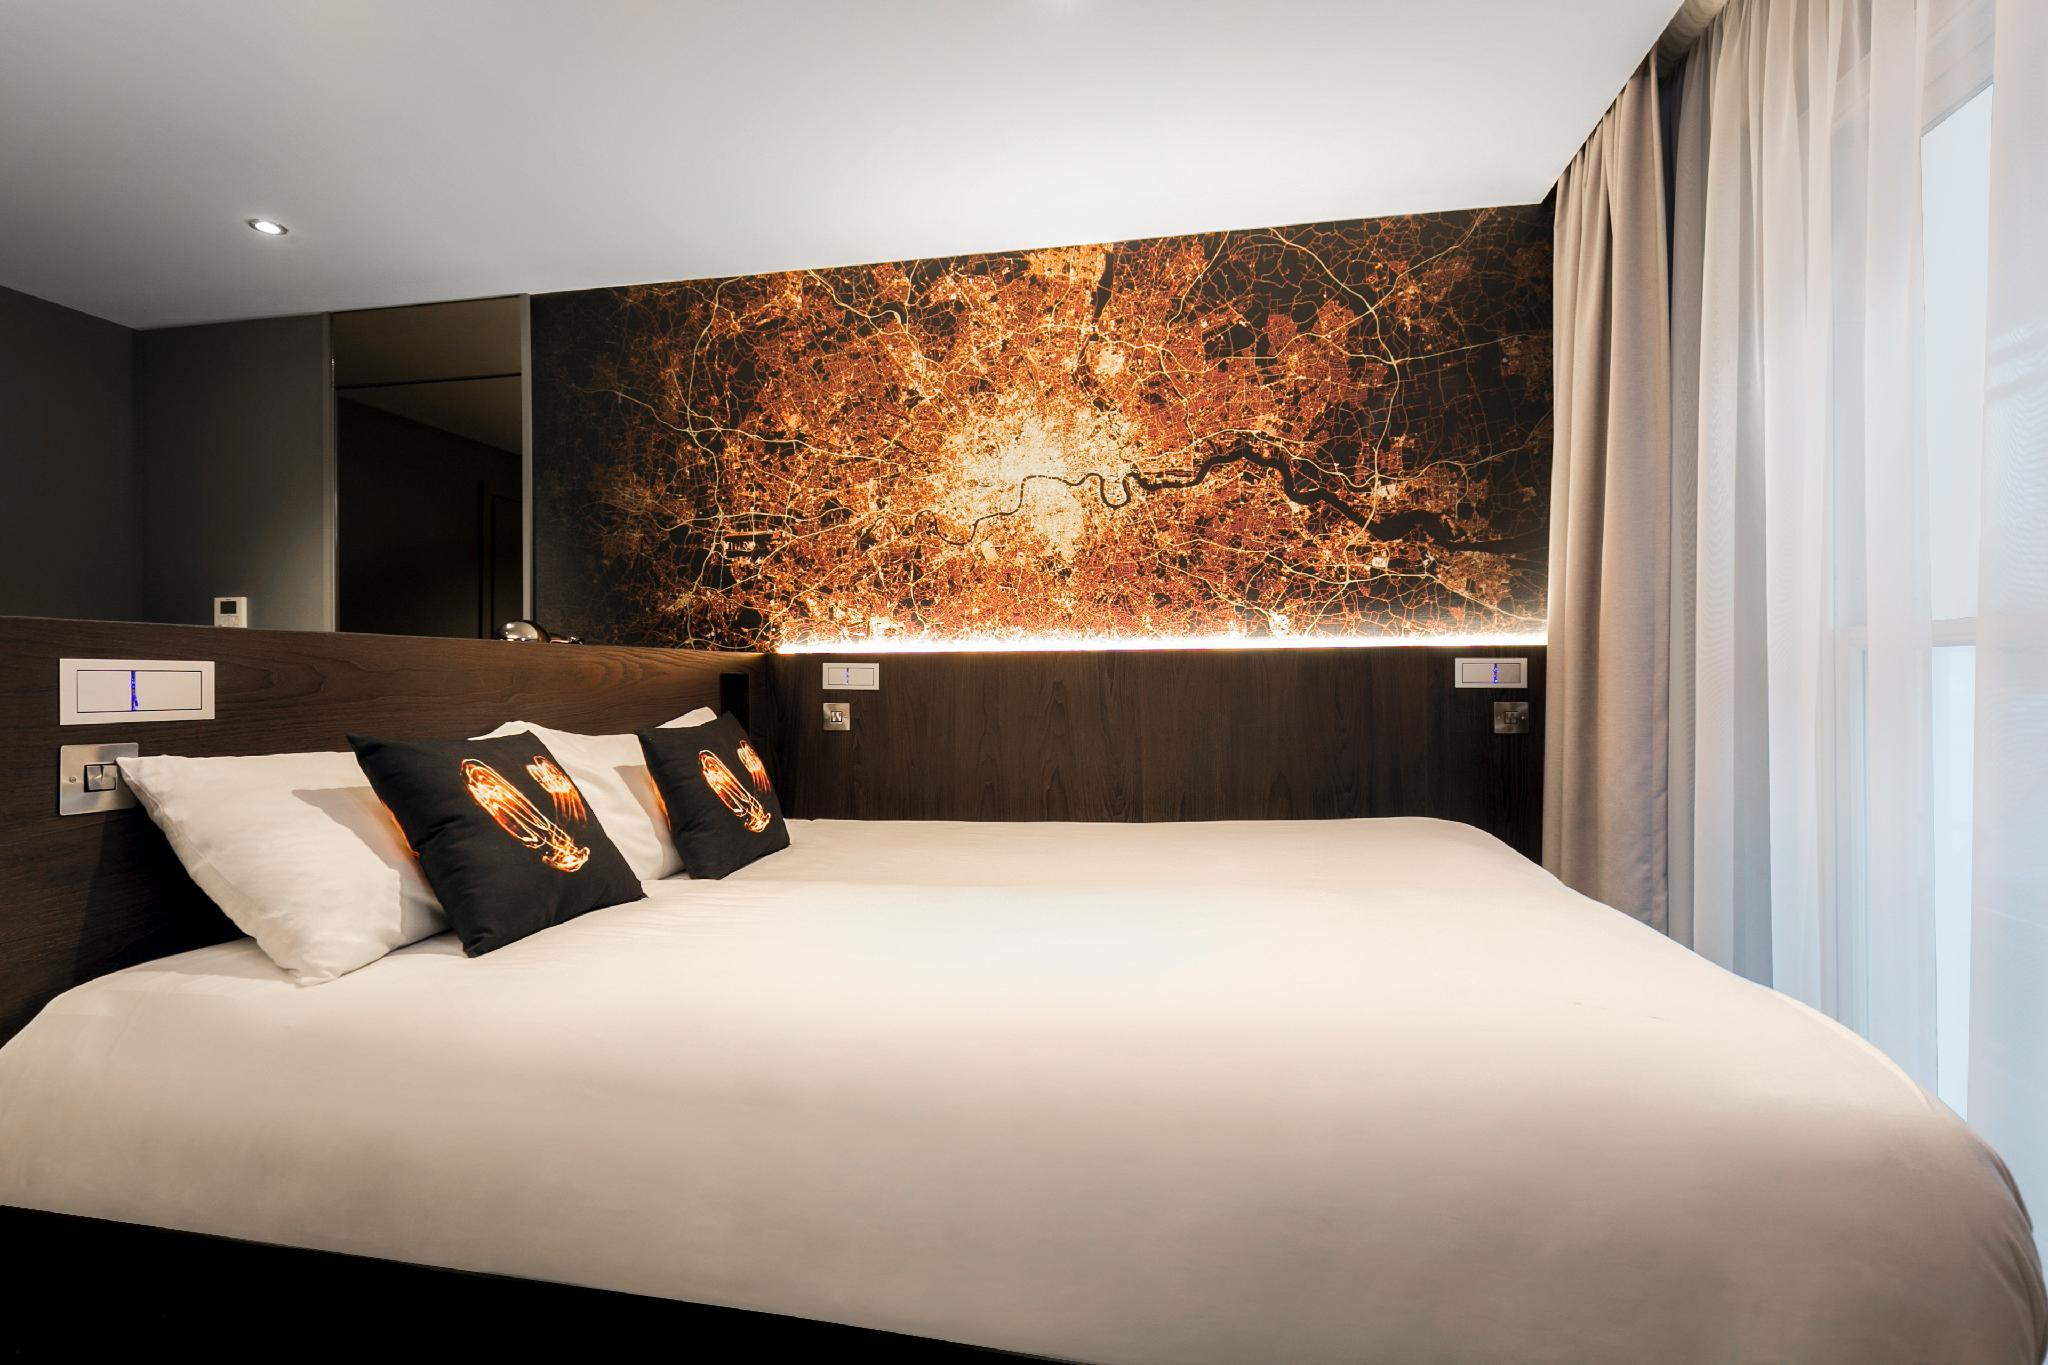 Best Price on Luma Concept Hotel Hammersmith in London + Reviews!